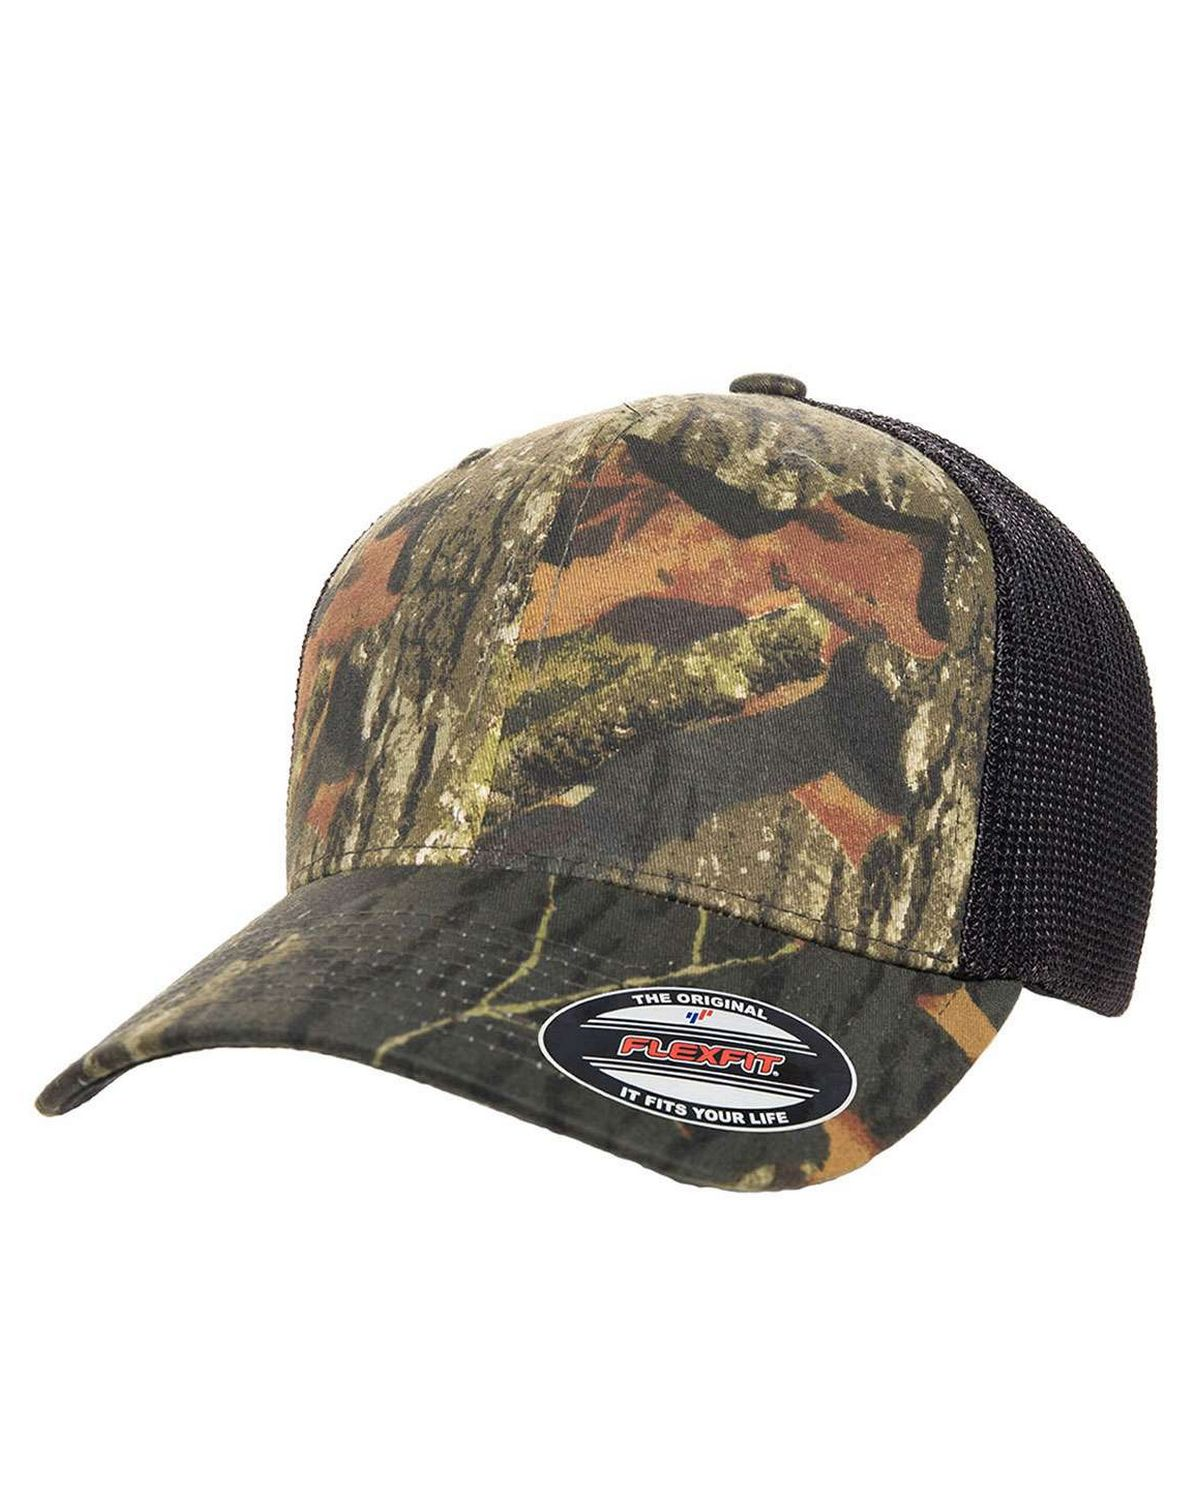 Flexfit 6911 Mens Mossy Oak Stretch Mesh Cap